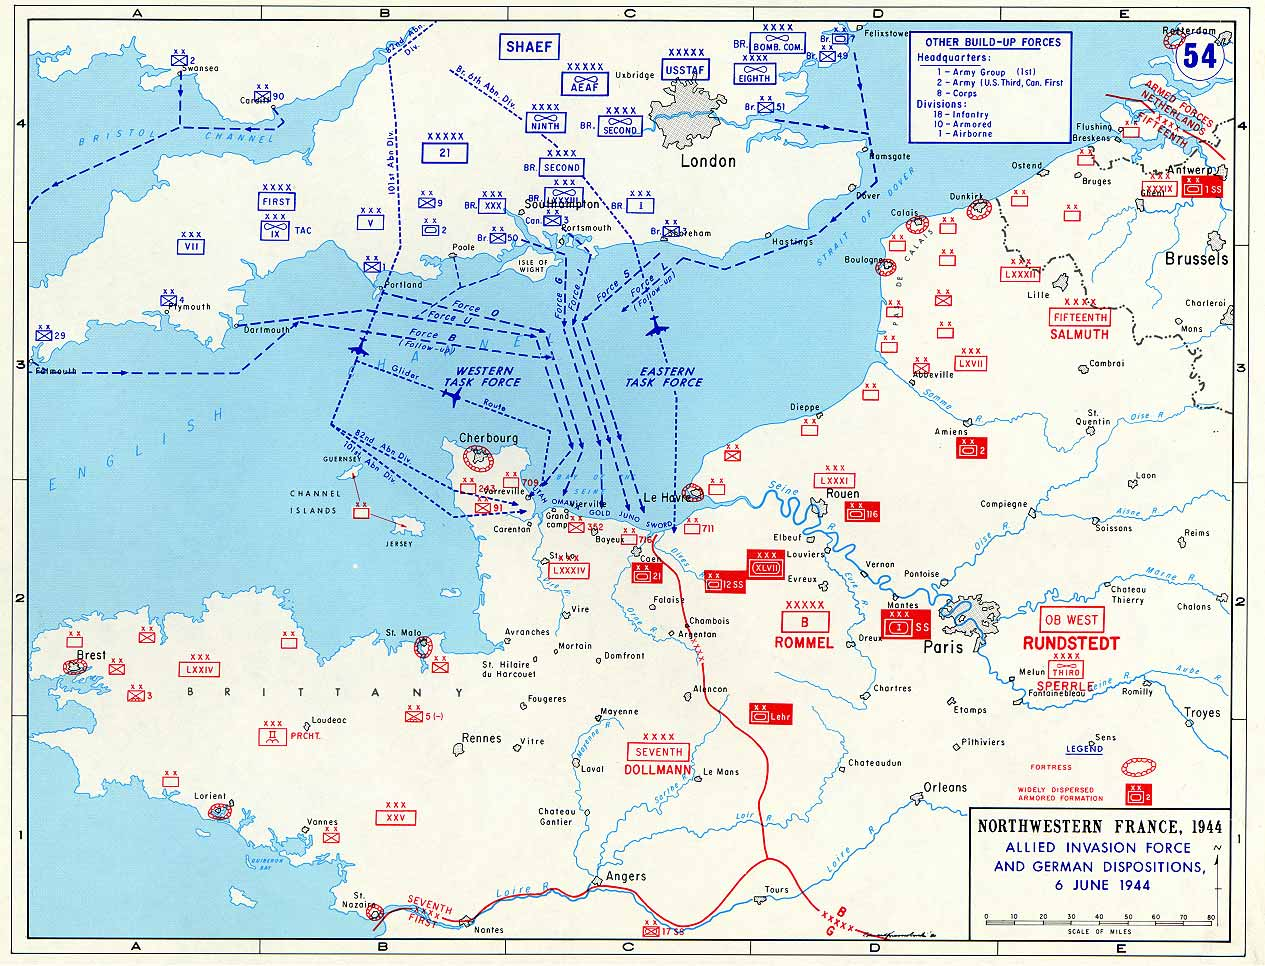 Normandy Landings Map Map of the Allied Landings in Normandy